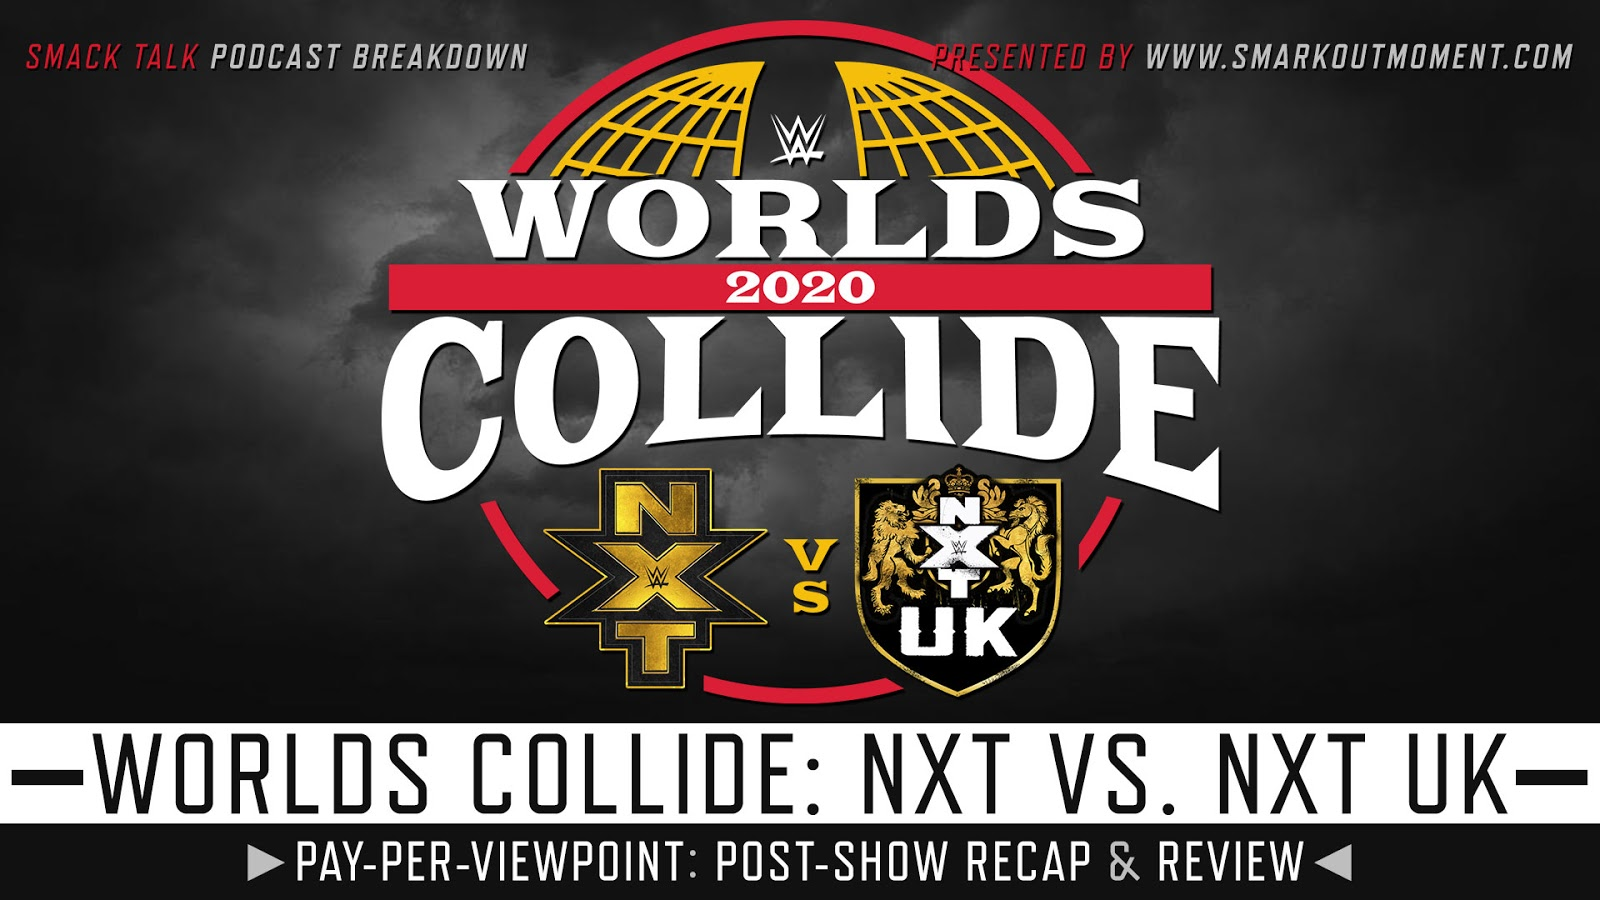 WWE Worlds Collide: NXT vs. NXT UK Recap and Review Podcast